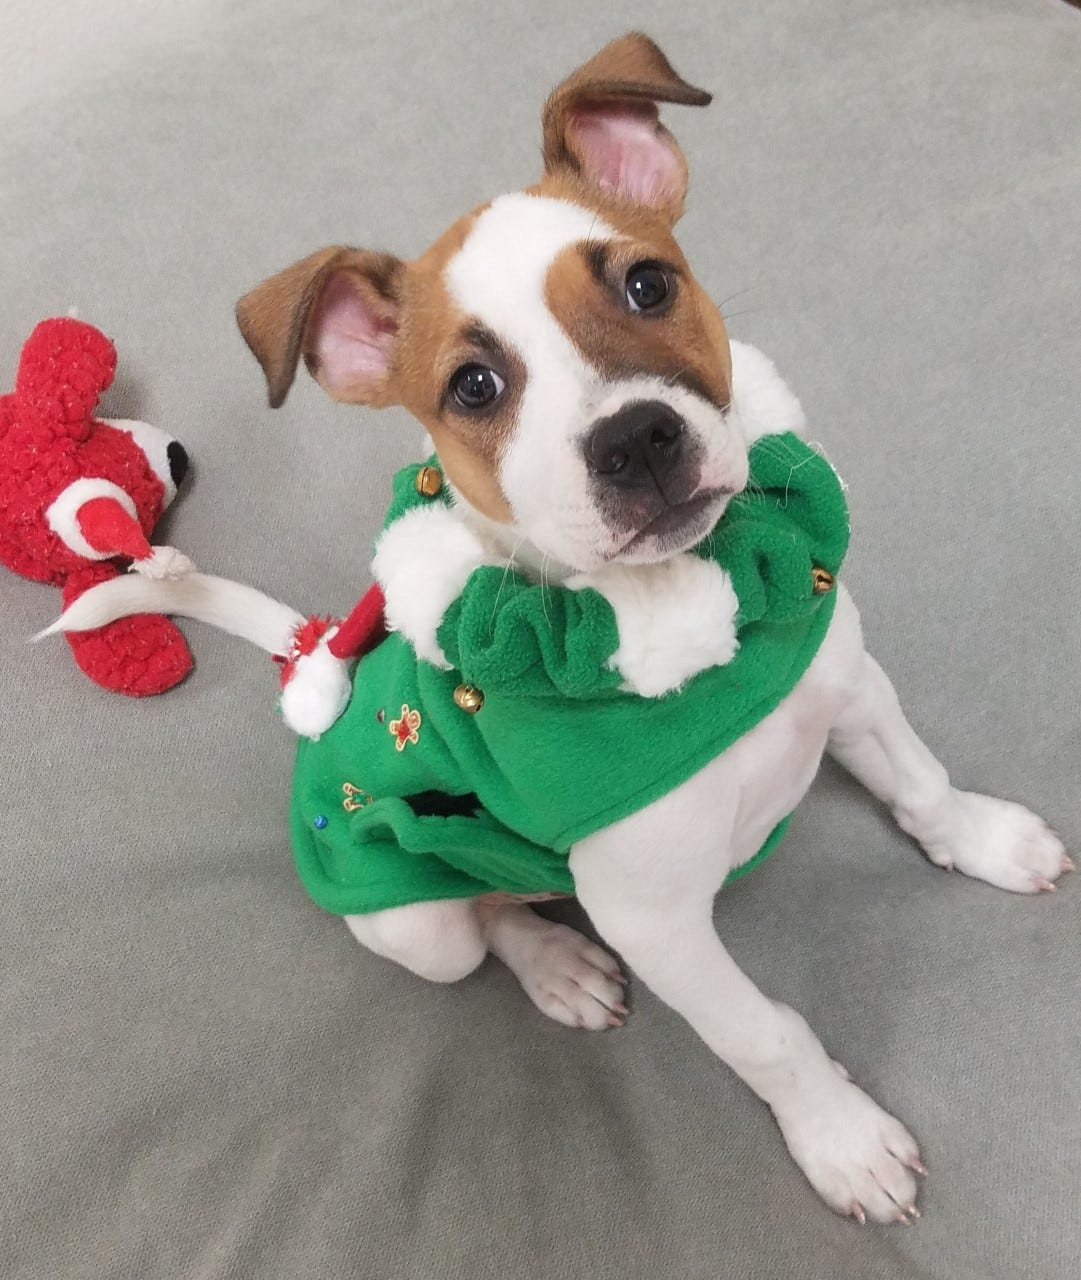 Animal Rescue Of Tracy Hosting Ugly Pet Sweater Fundraiser